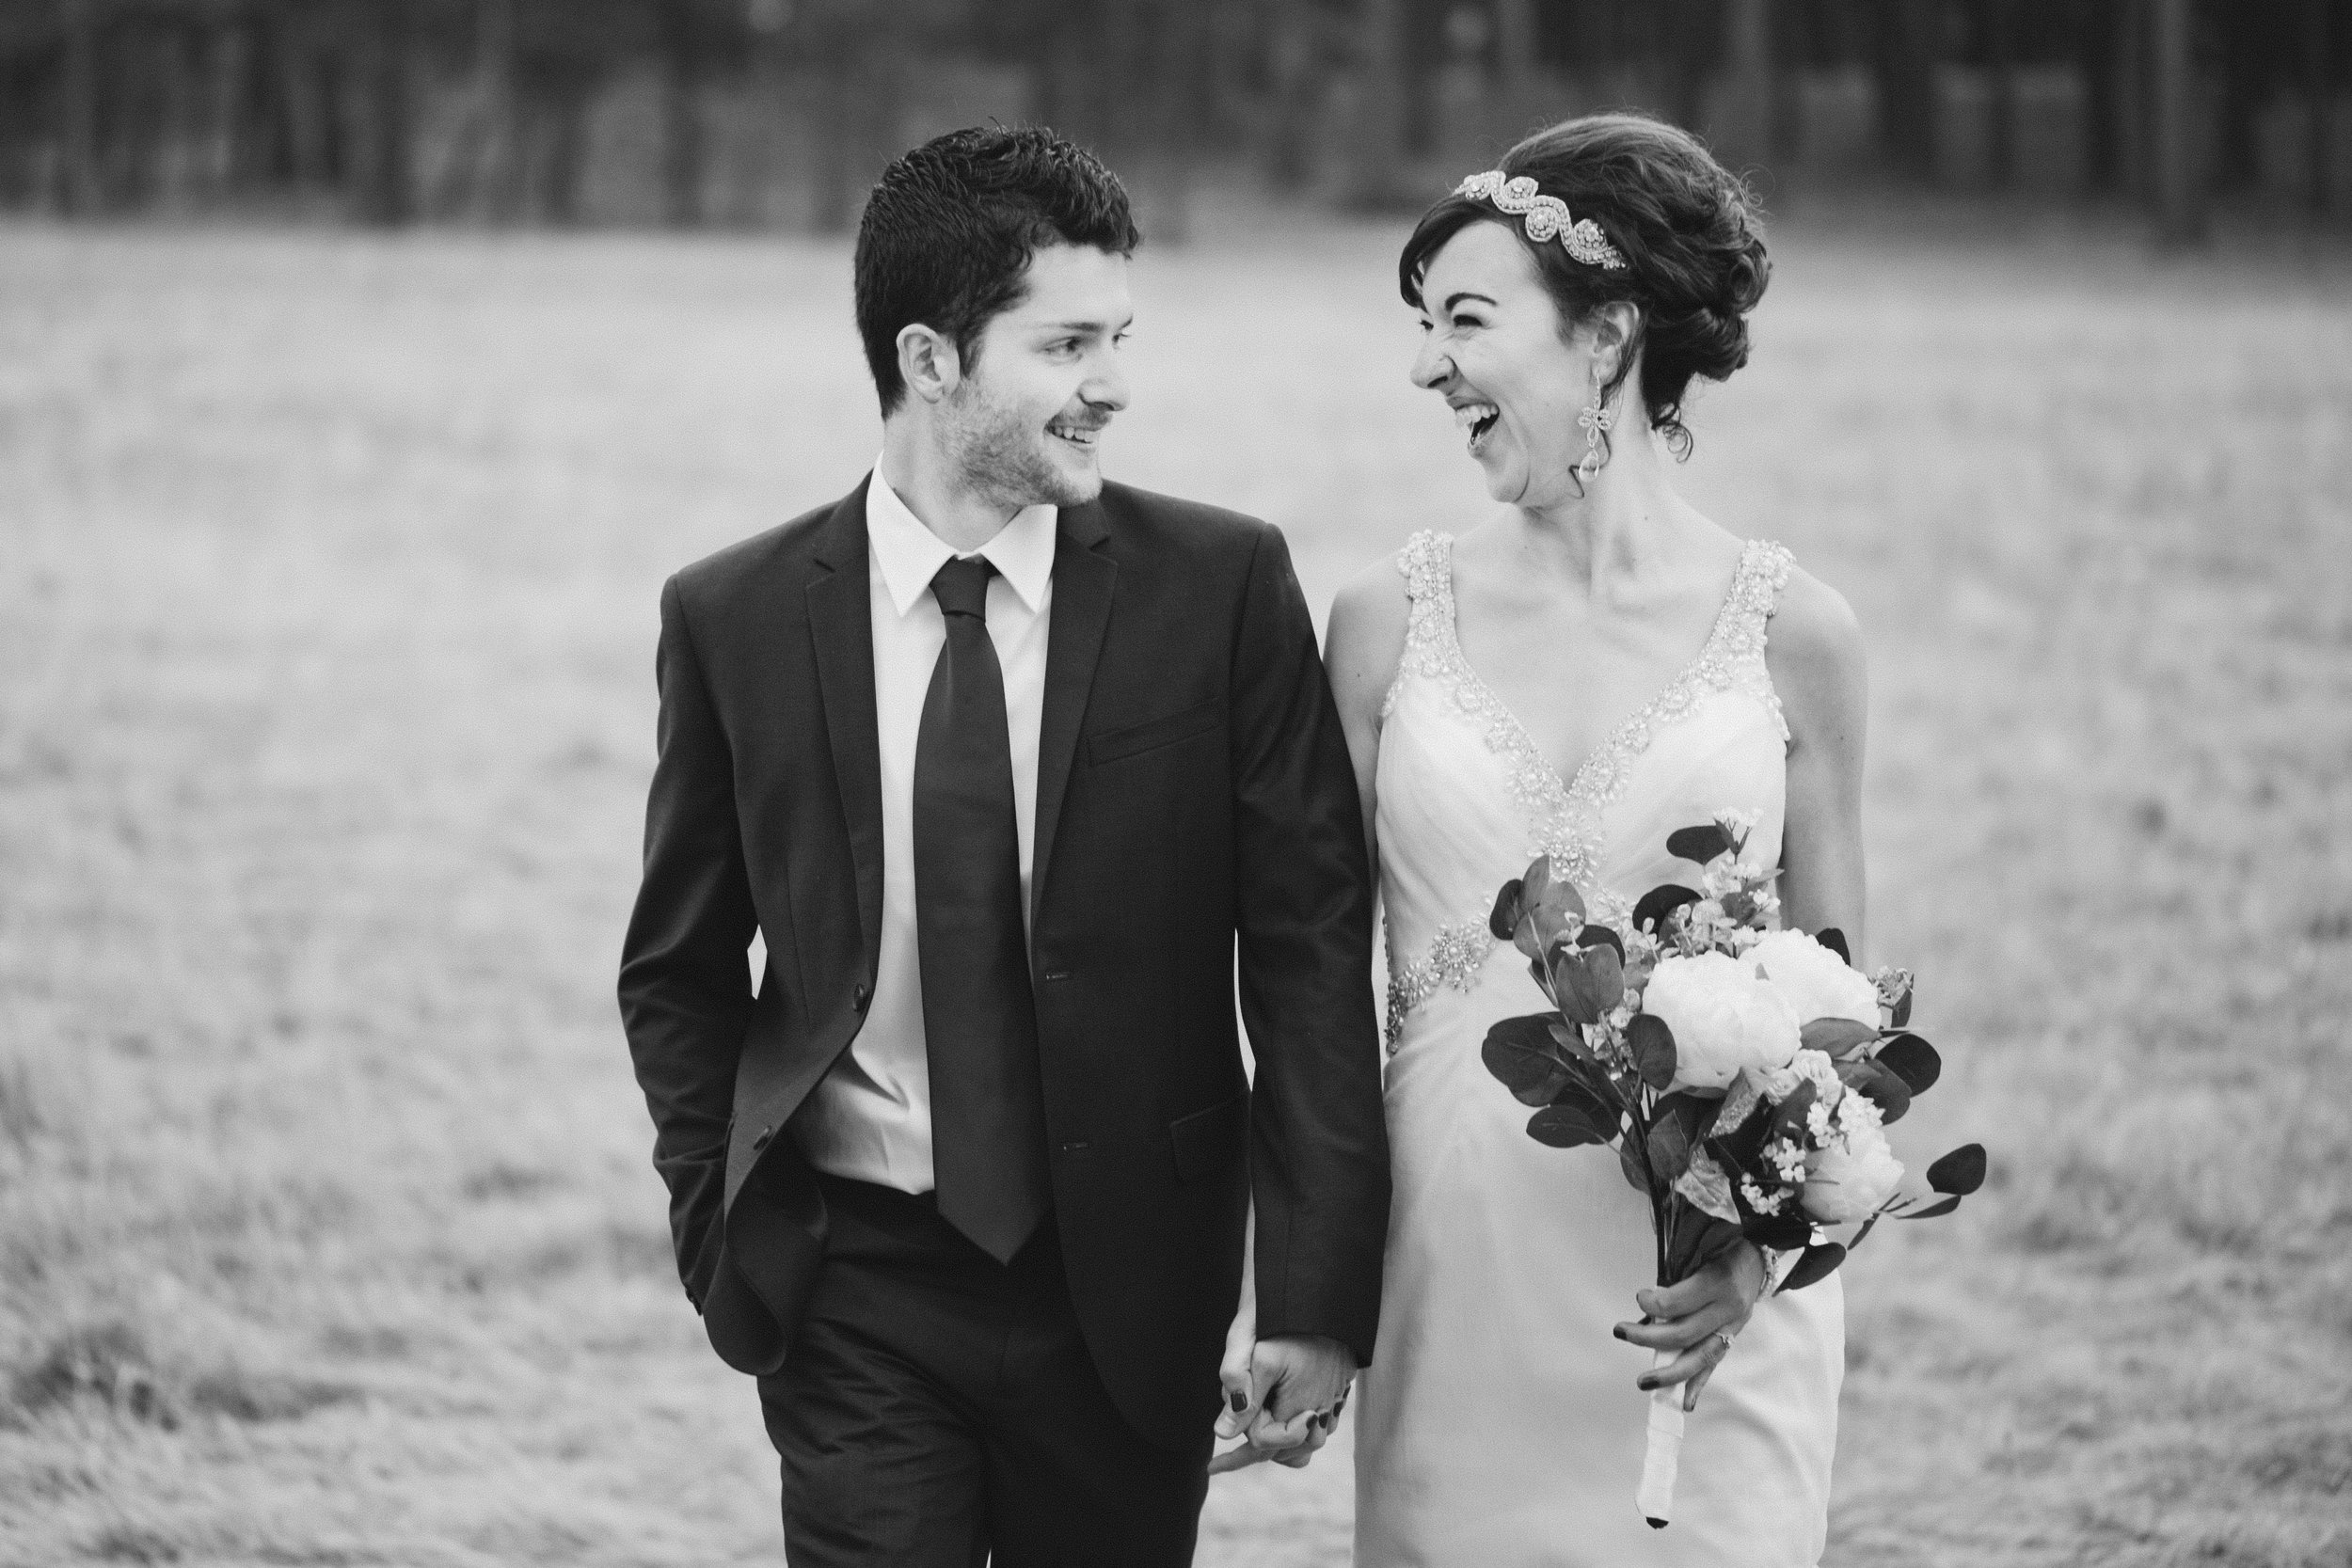 classic black and white film wedding photography